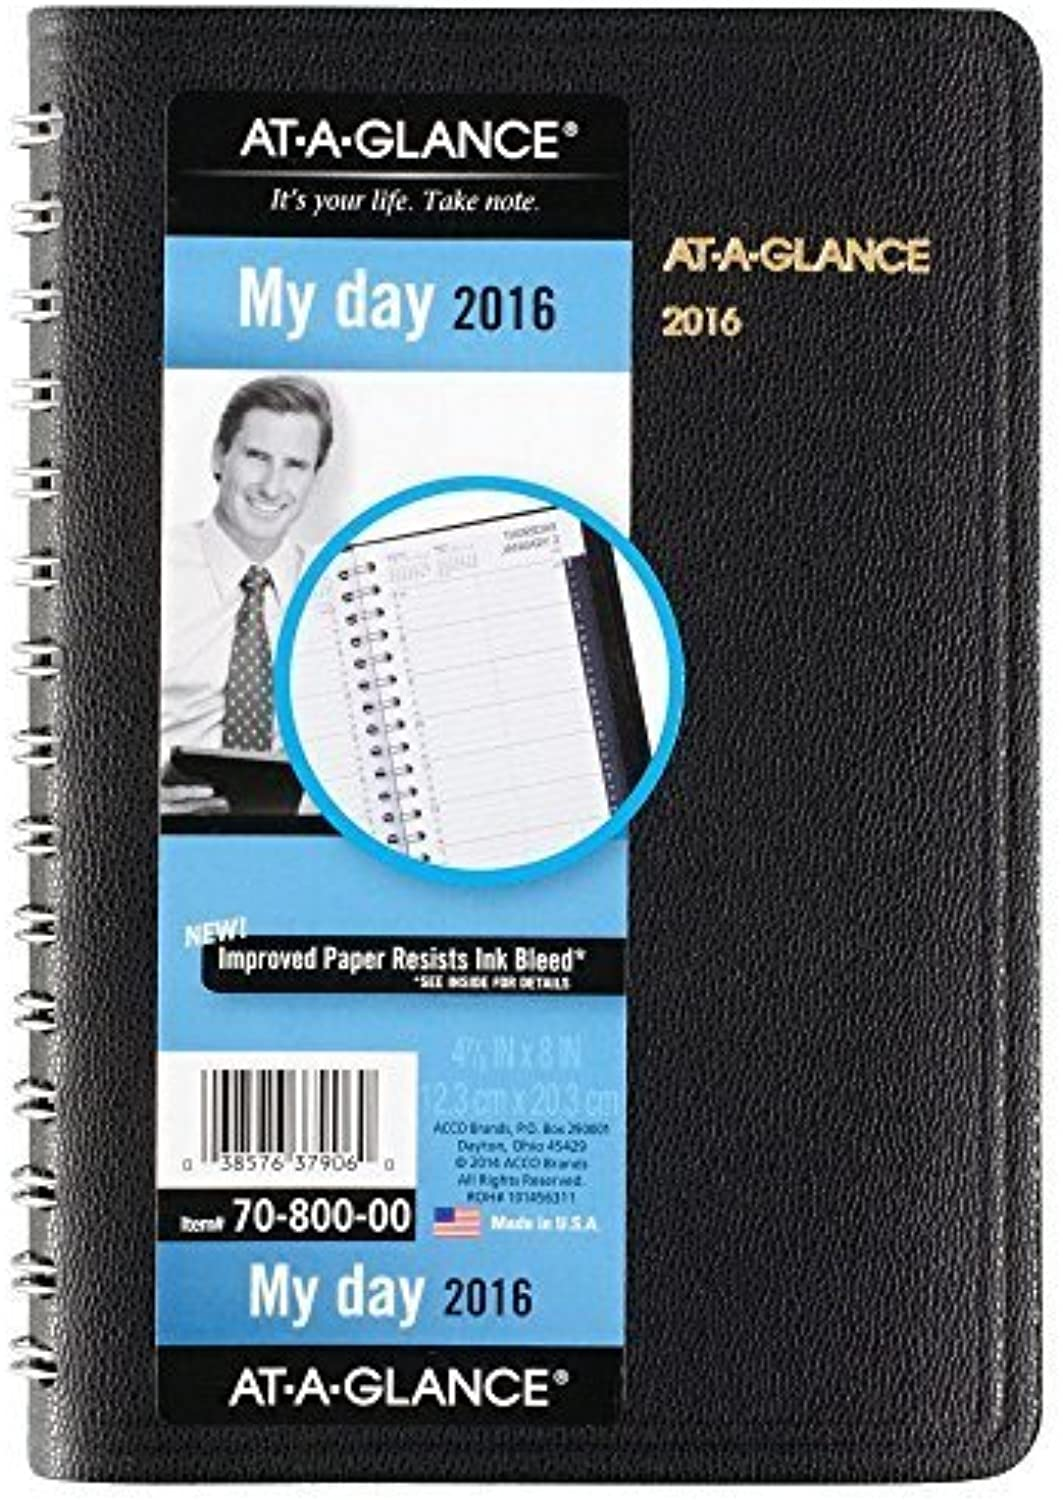 AT-A-GLANCE Daily Appointment Book   Planner 2016, 12 Months, 4.88 x 8 Inch Page Größe, Assorted Farbes (7080000) by At-A-Glance B018REL3P6 | Offizielle